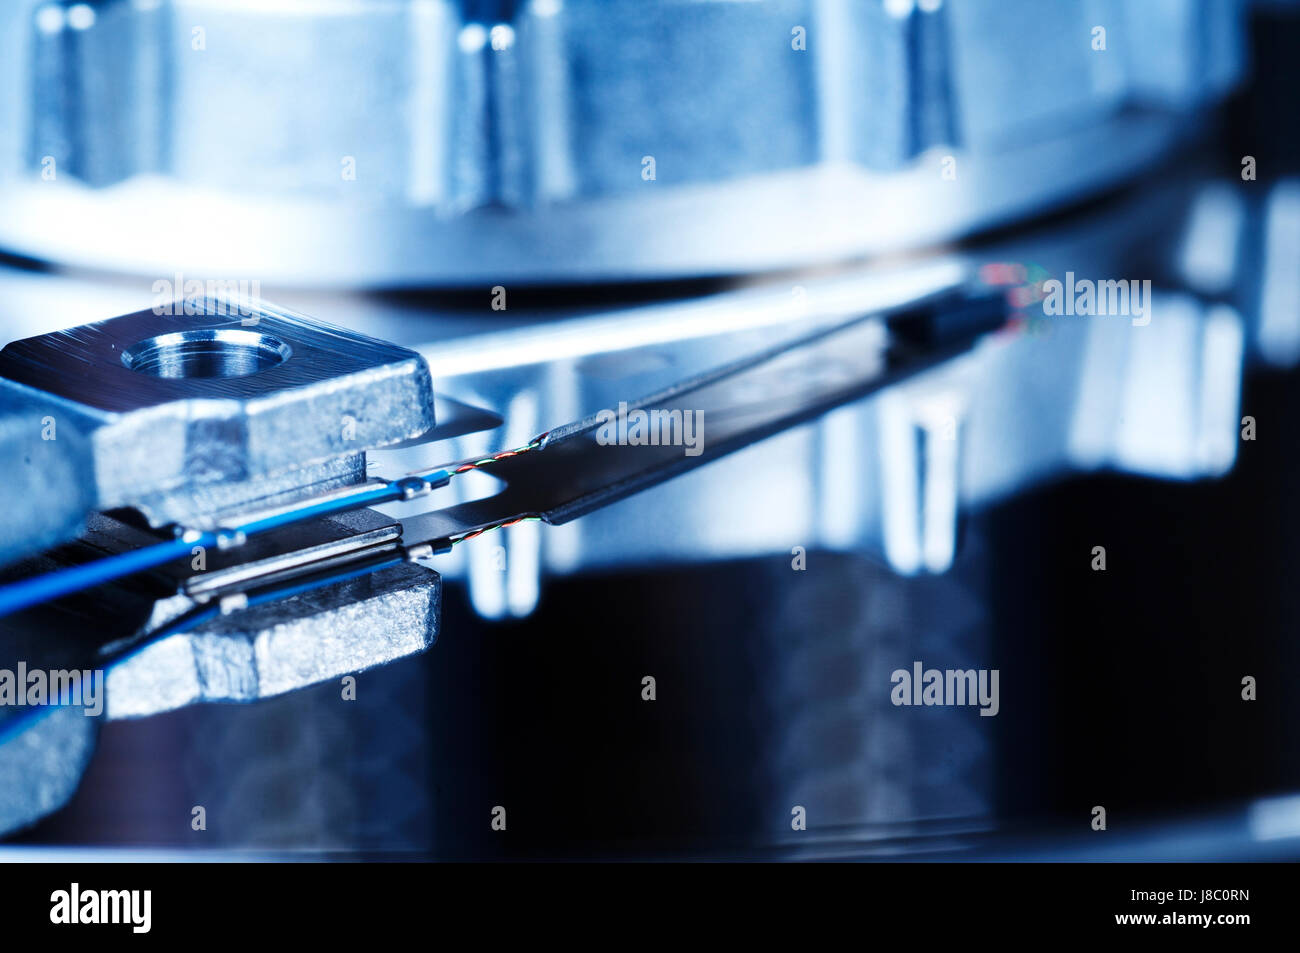 electronics, engineering, data, informations, substratums, facts, information, Stock Photo